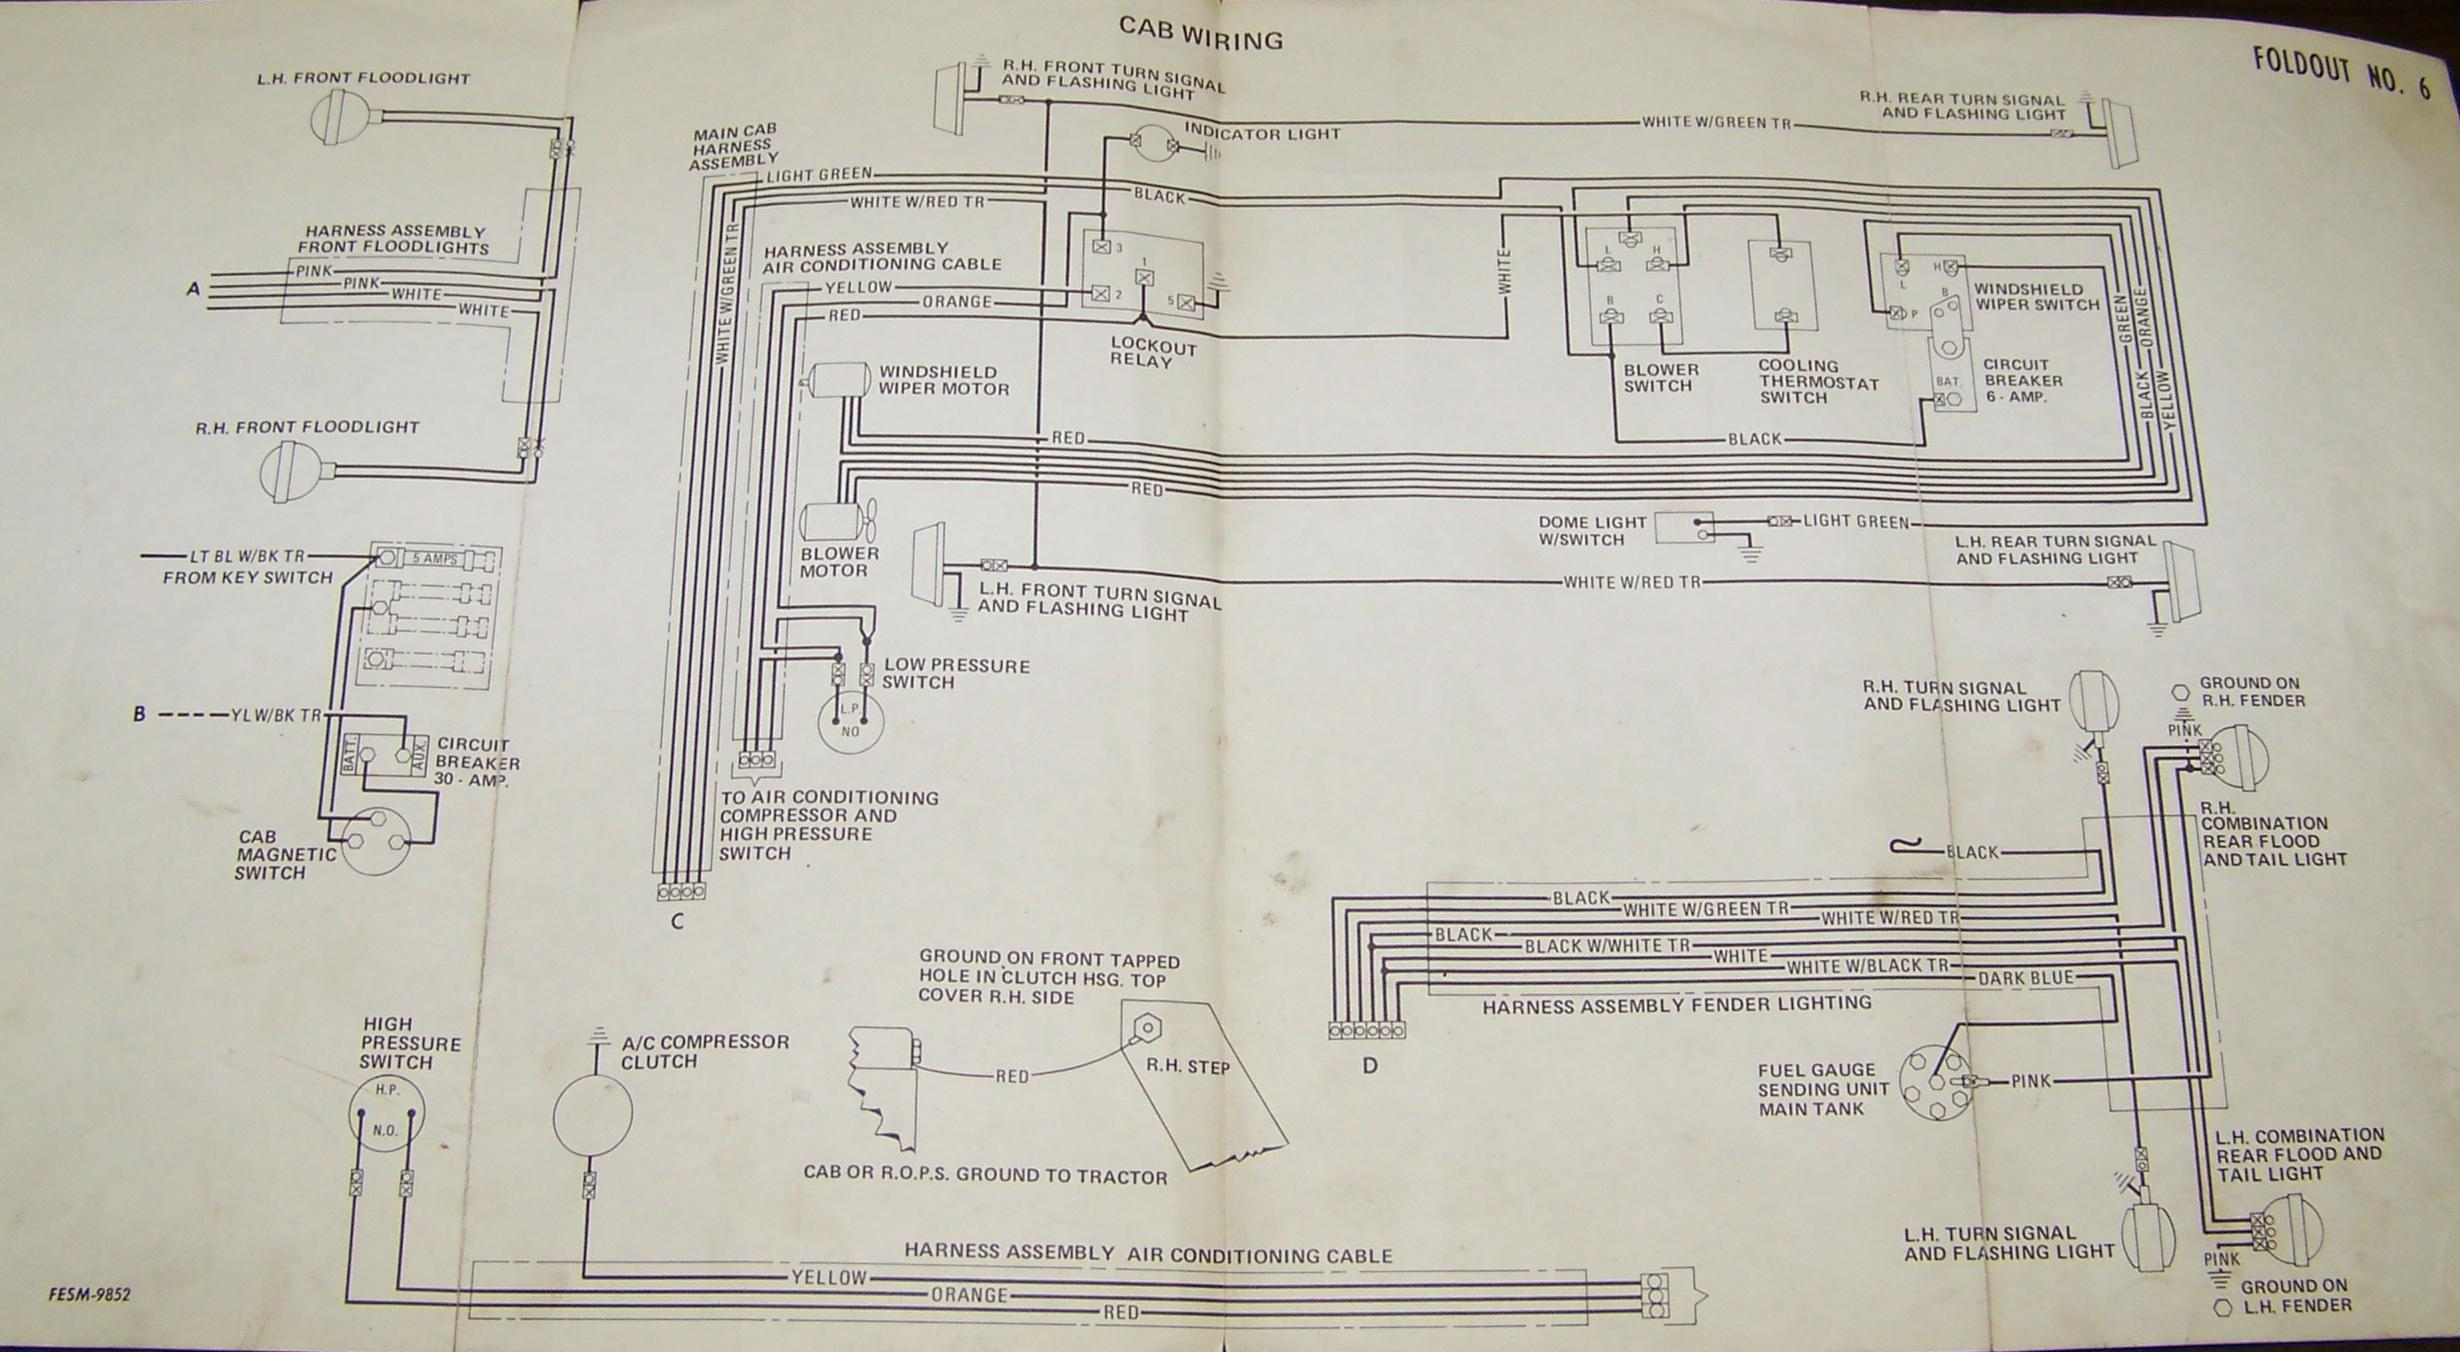 86series6 ih tractor wiring diagram ih tractor power steering \u2022 free wiring IH 1486 at fashall.co